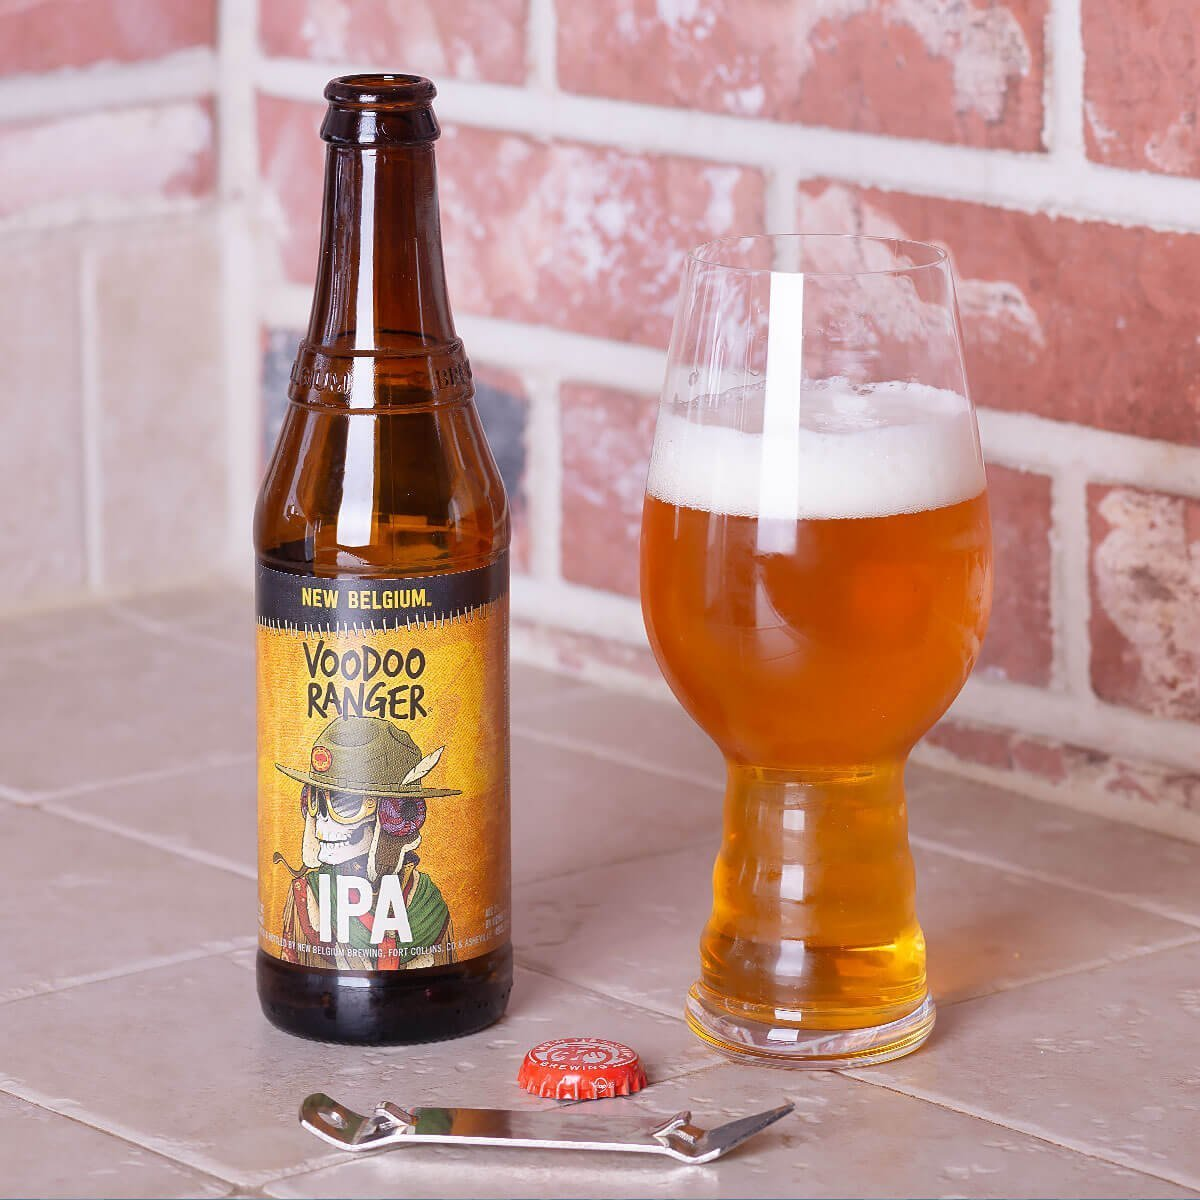 Voodoo Ranger IPA is an American IPA by New Belgium Brewing Company that blends juicy tropical fruit and citrus with pine and resin.